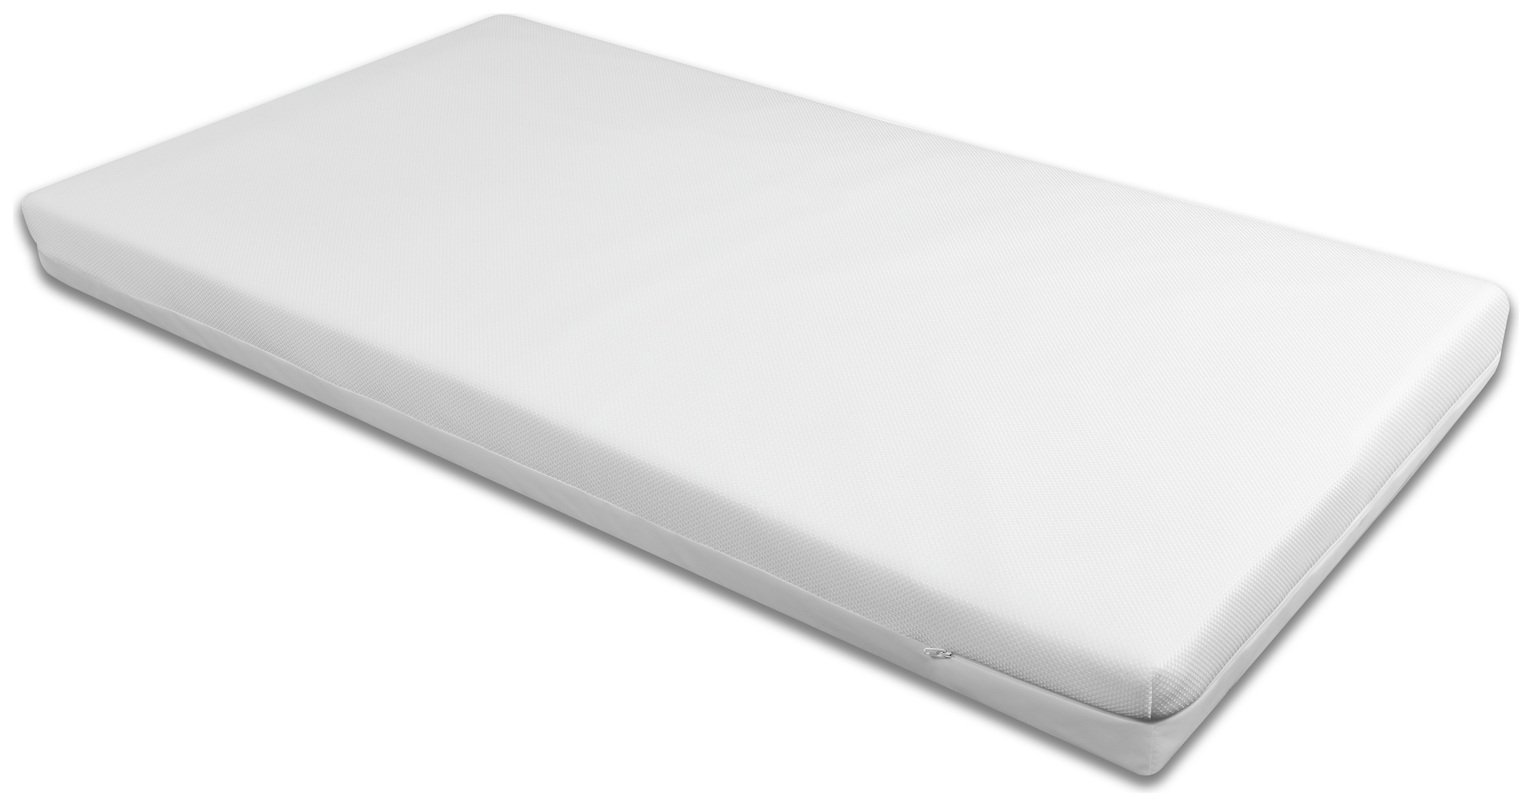 Mamas & Papas Pocket Sprung Cot Bed Mattress 140 x 70cm